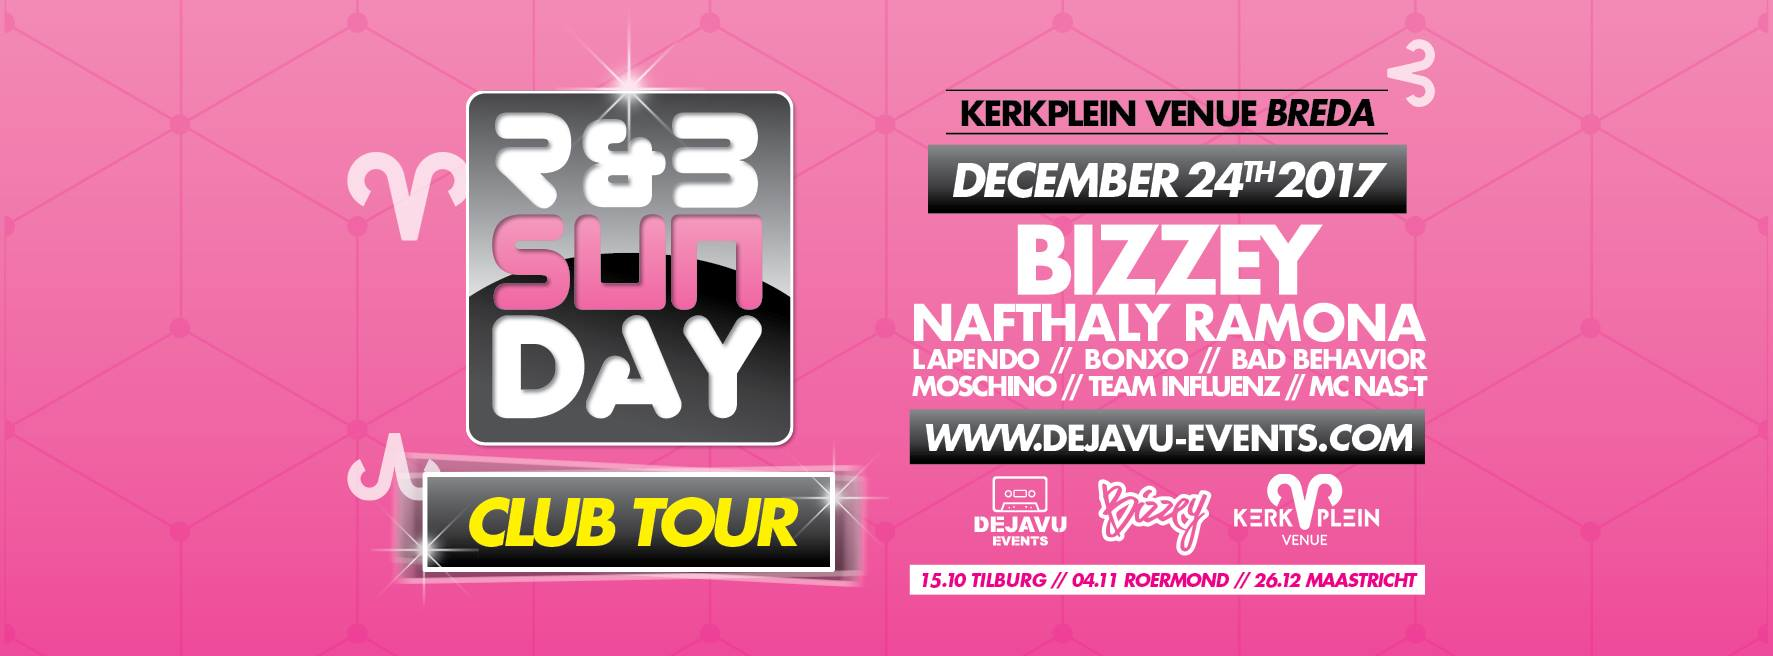 R&B Sunday – Club Tour  Kerkplein Venue Breda